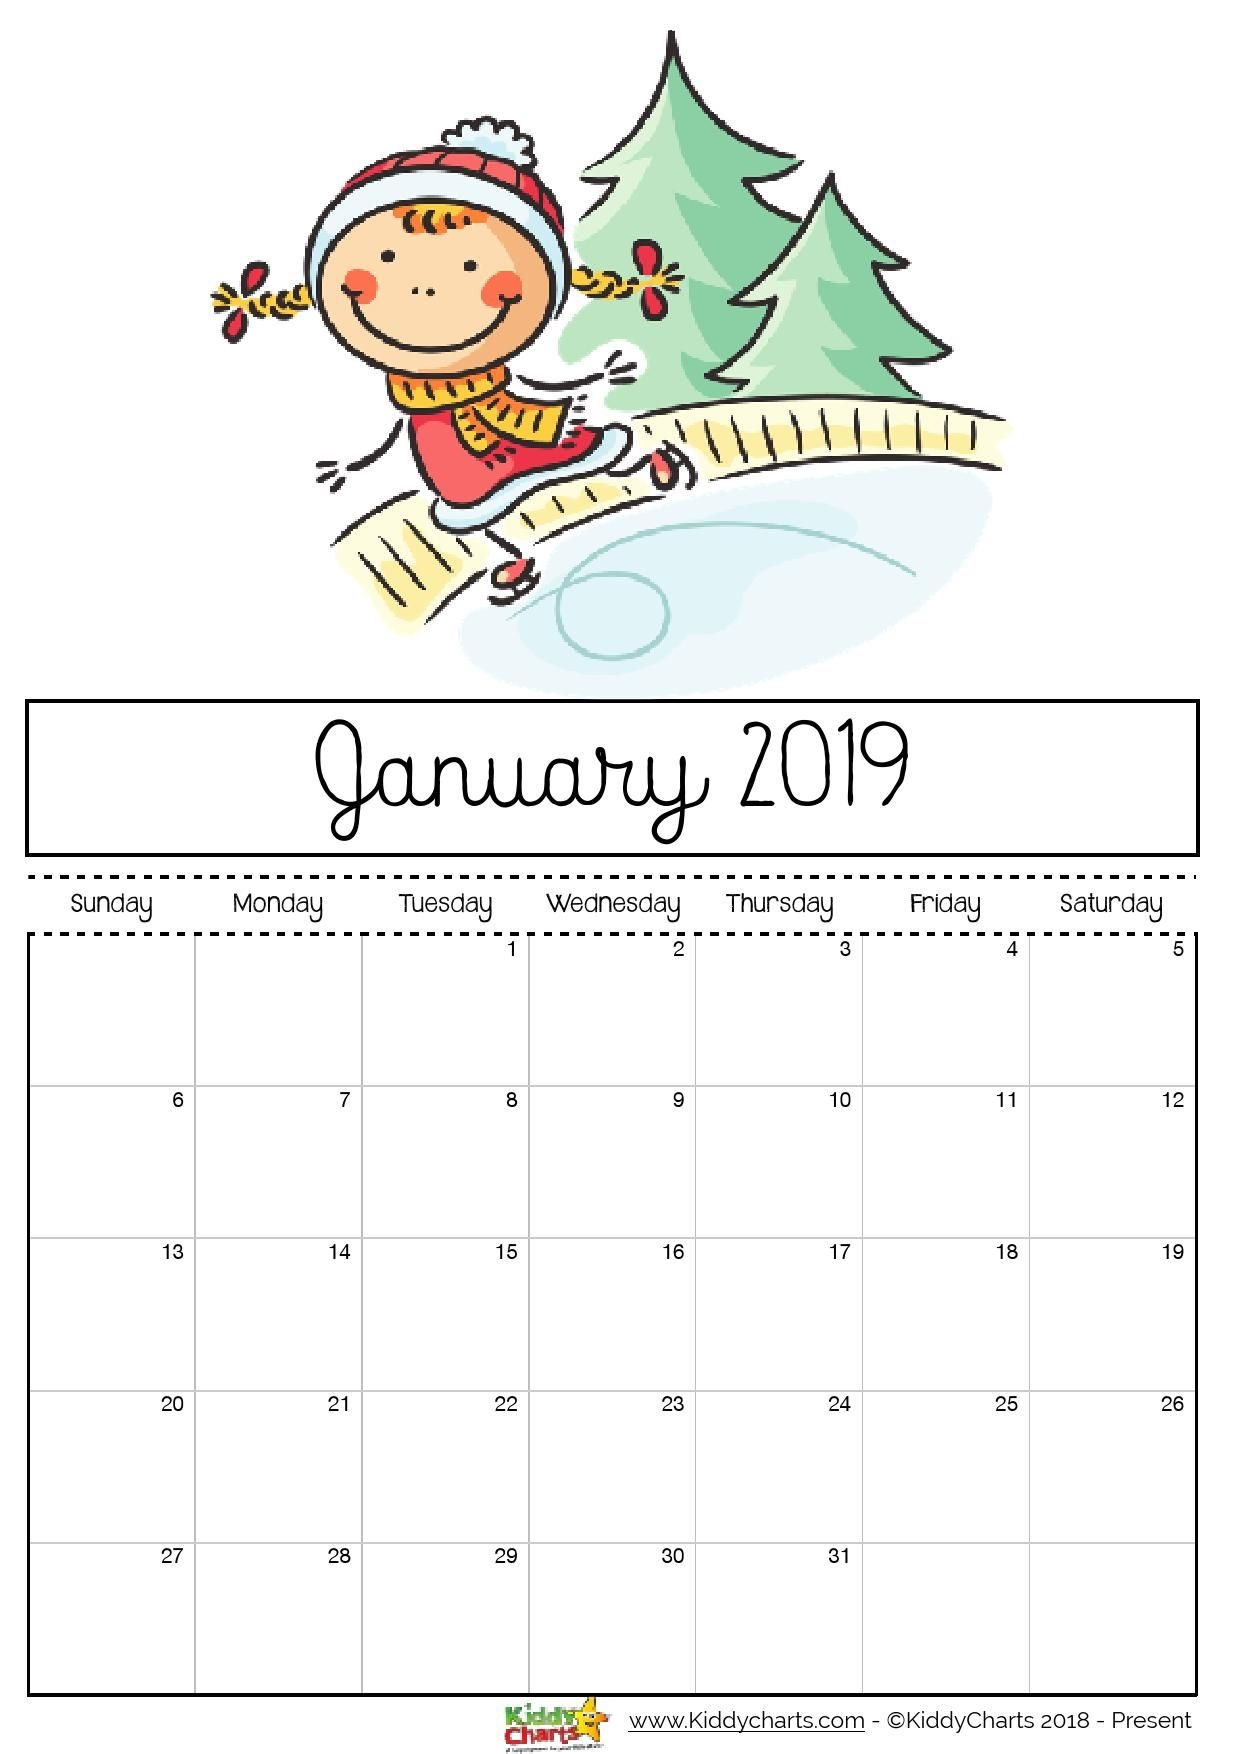 Free Printable Calendars For Kids